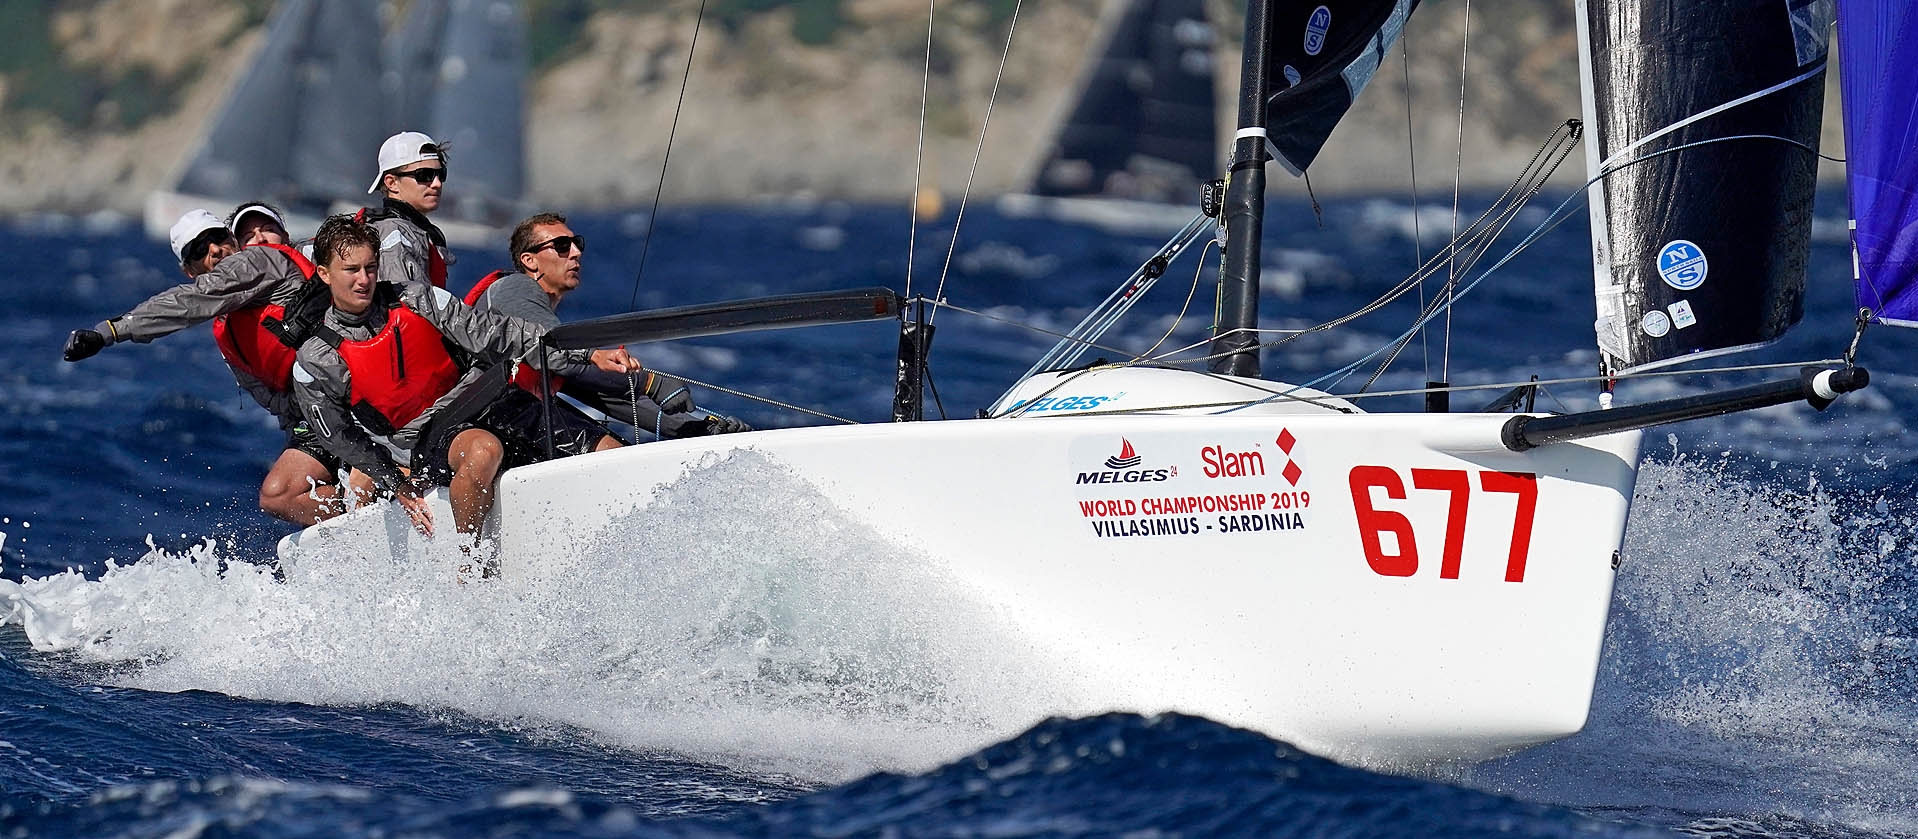 White Room GER677 of Michael Tarabochia at the 2019 Melges 24 World Championship in Villasimius, Sardinia, Italy